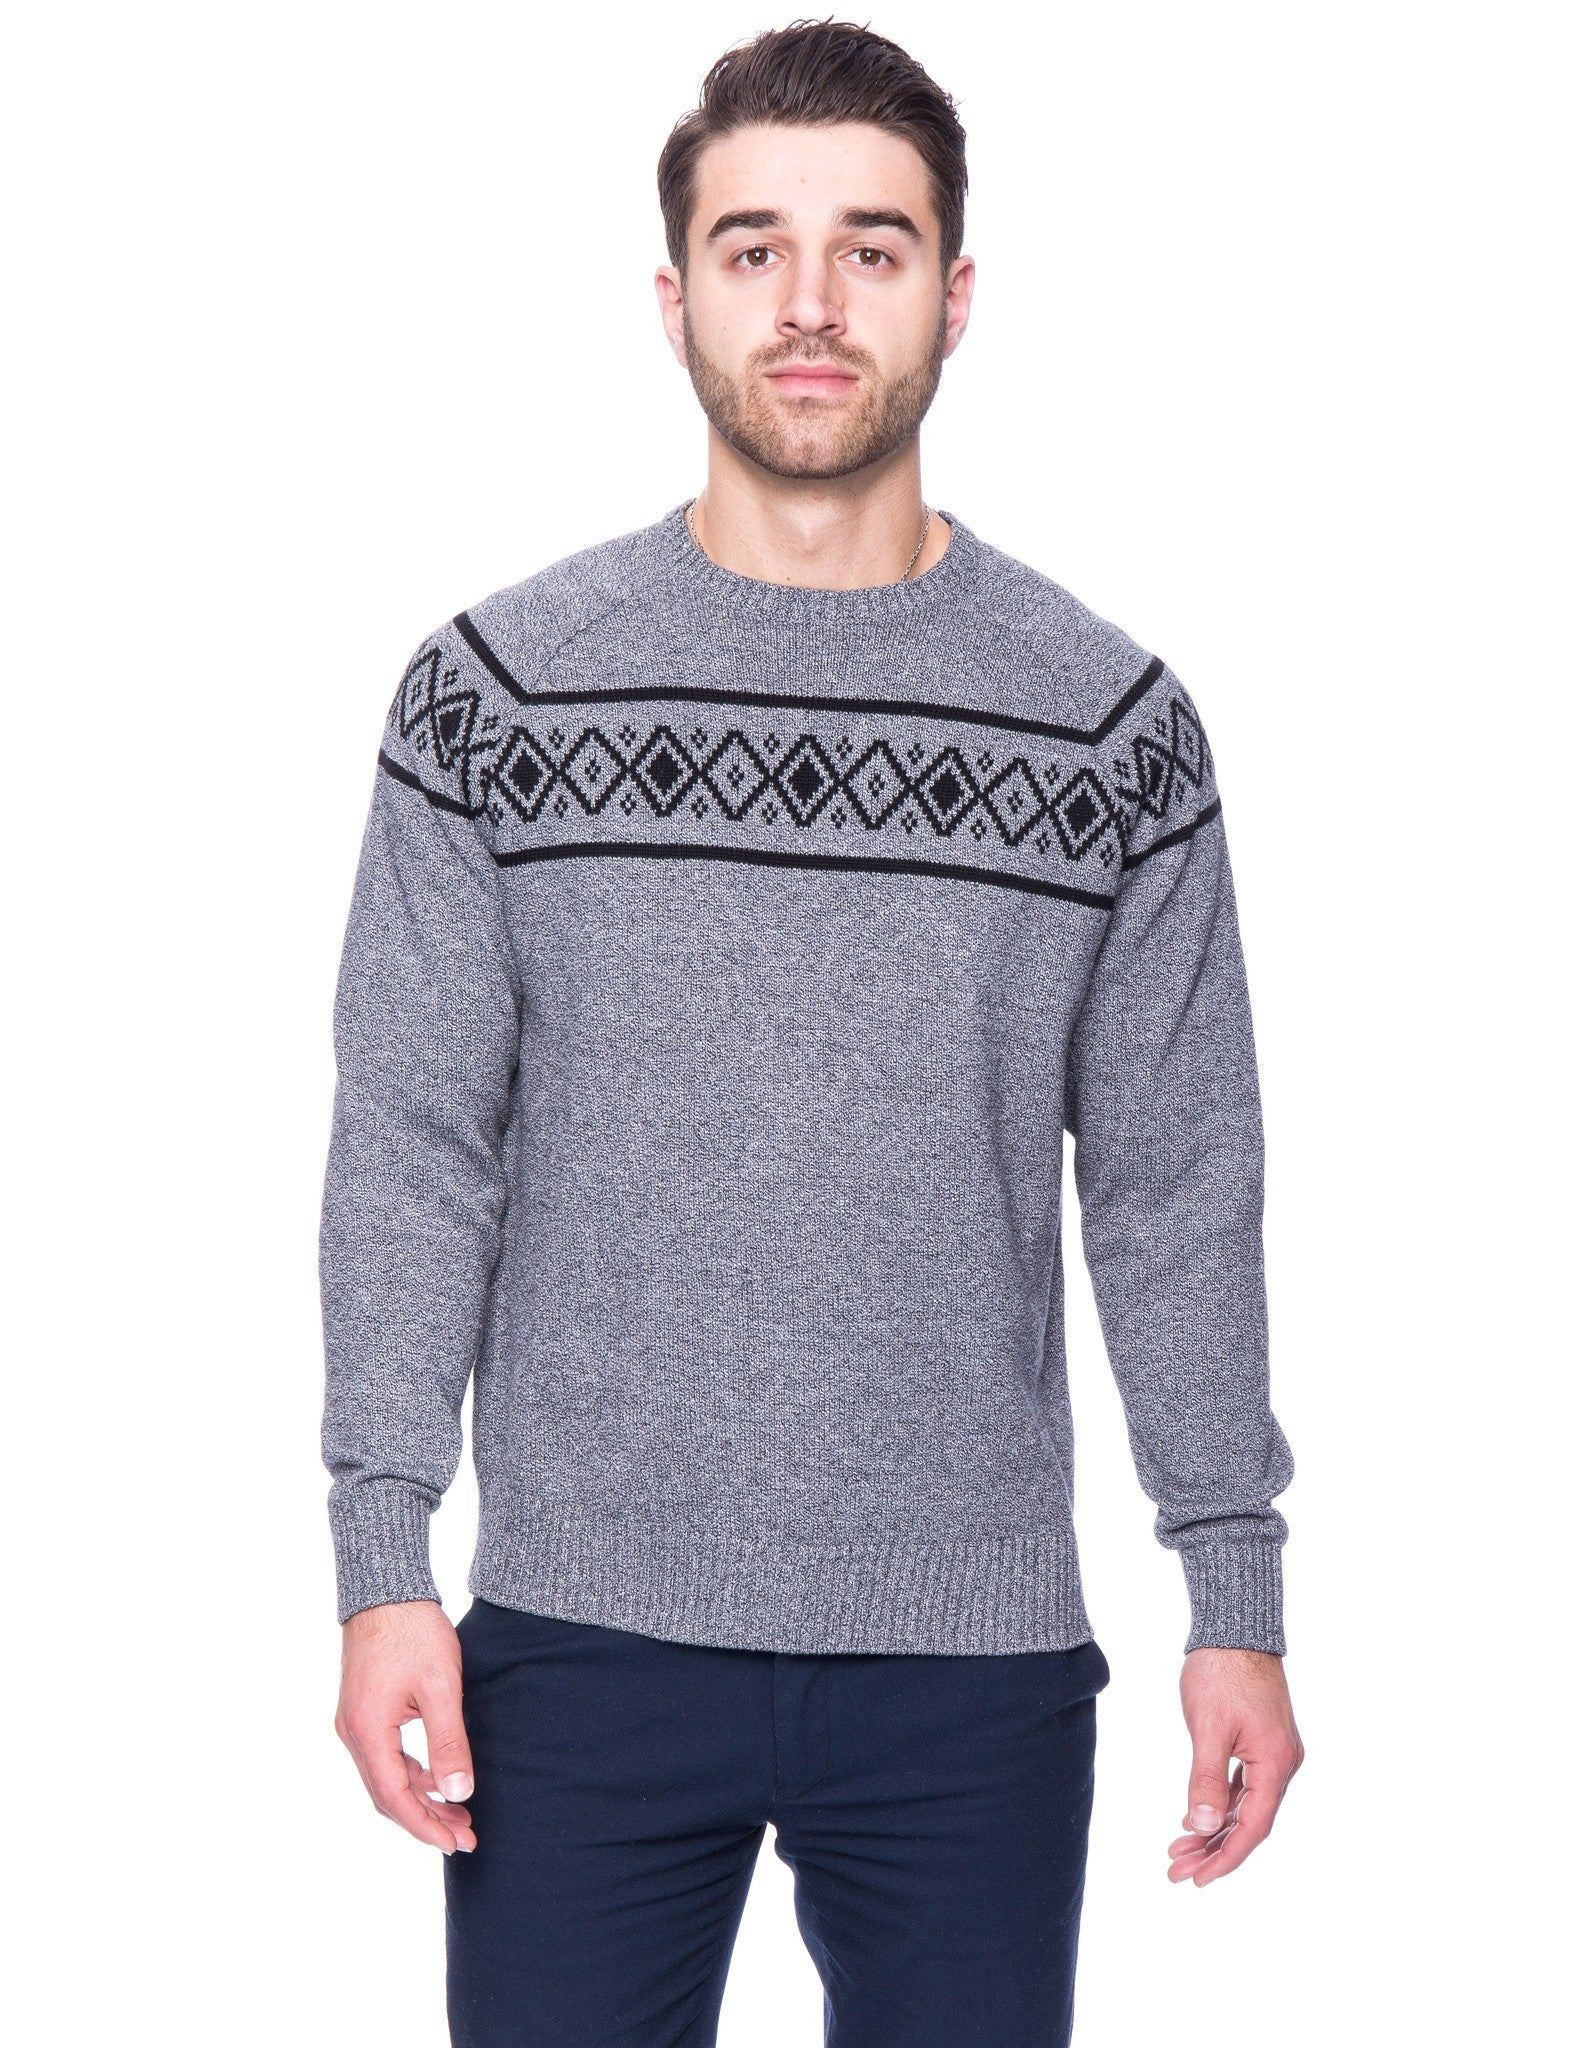 100% Cotton Crew Neck Sweater with Fair Isle Stripe - Marl Black/White